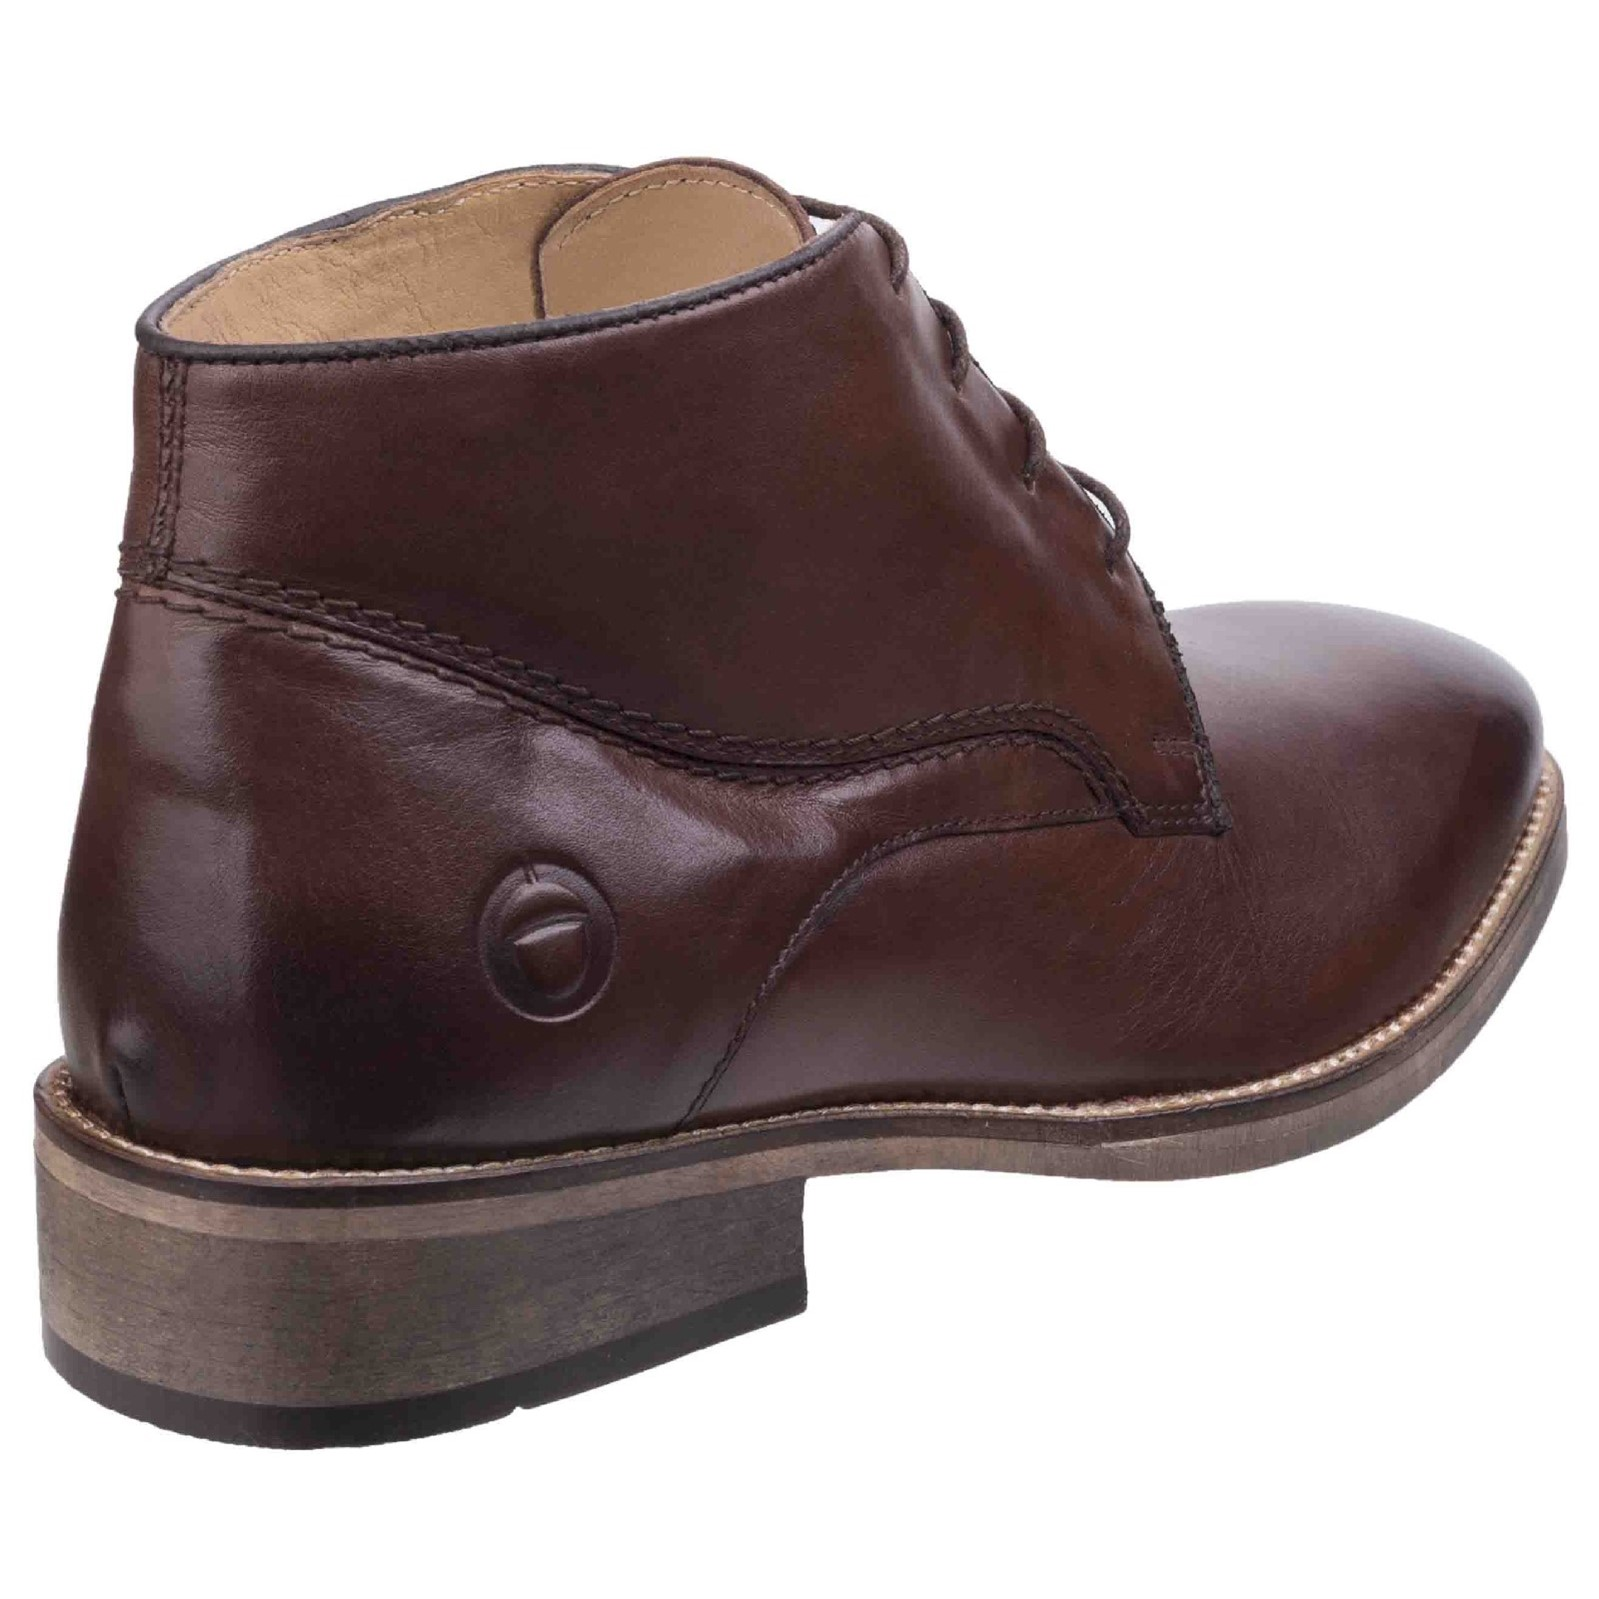 Cotswold Maugesbury Herren Comfortable Laced Leder  Herren Maugesbury Ankle Stiefel e377bb